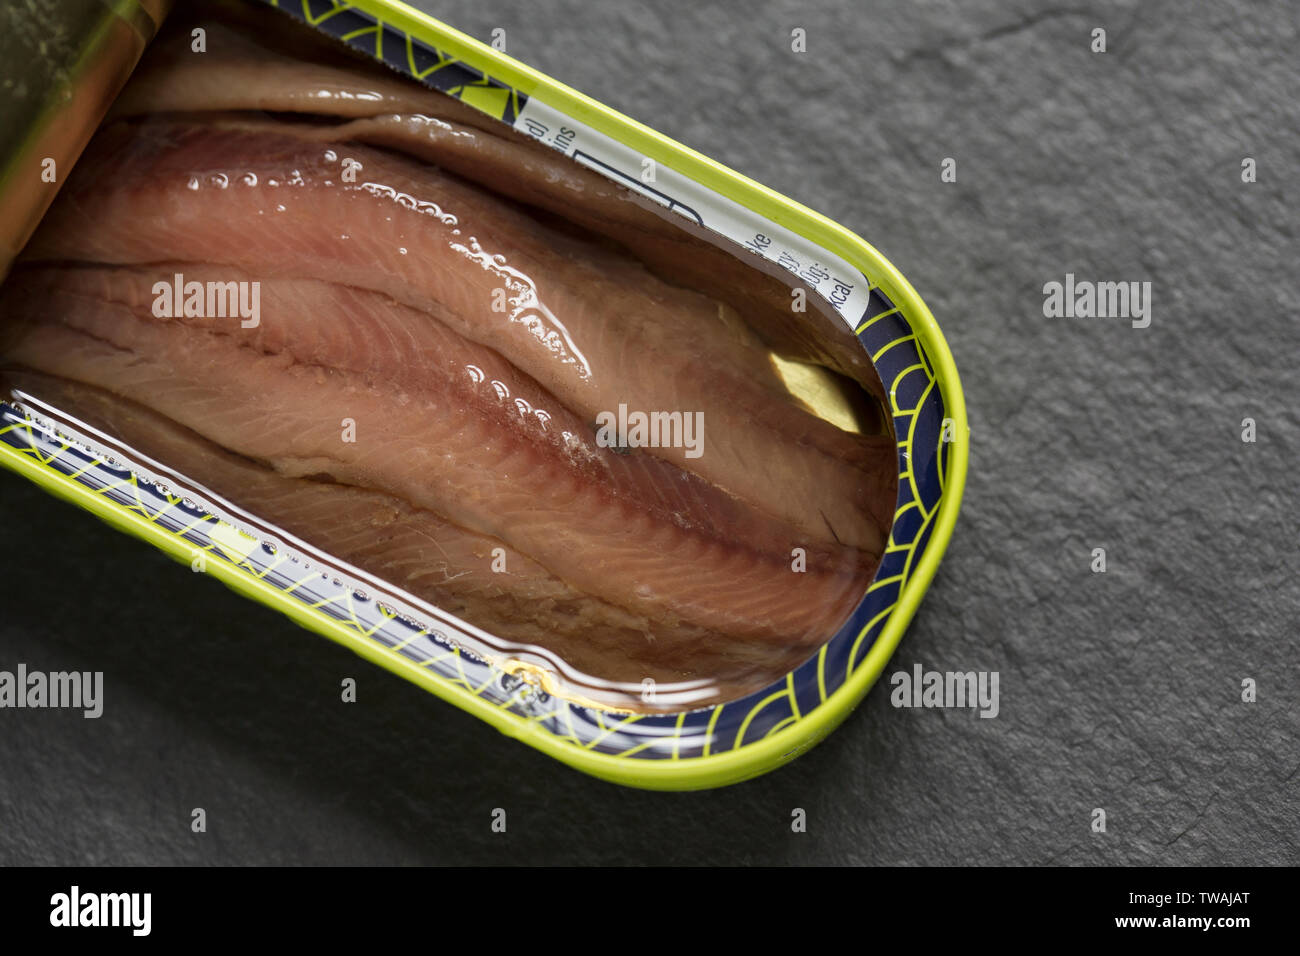 An opened tin of anchovy fillets from anchovies caught in the south east pacific and bought from a supermarket in the UK. Dorset England UK GB - Stock Image